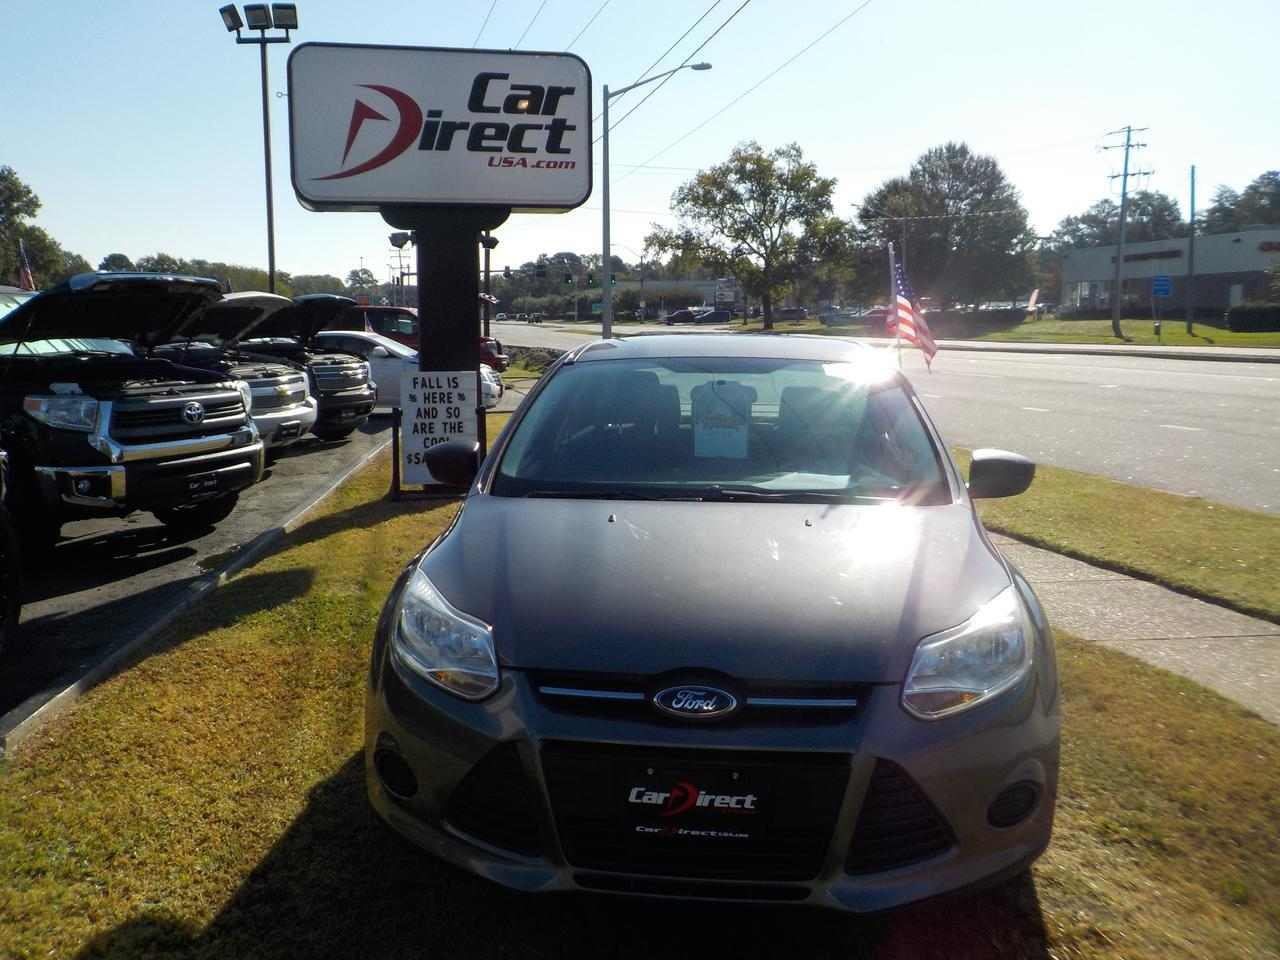 2014 FORD FOCUS S, WARRANTY, CRUISE CONTROL, CD PLAYER, AUX PORT! Virginia Beach VA